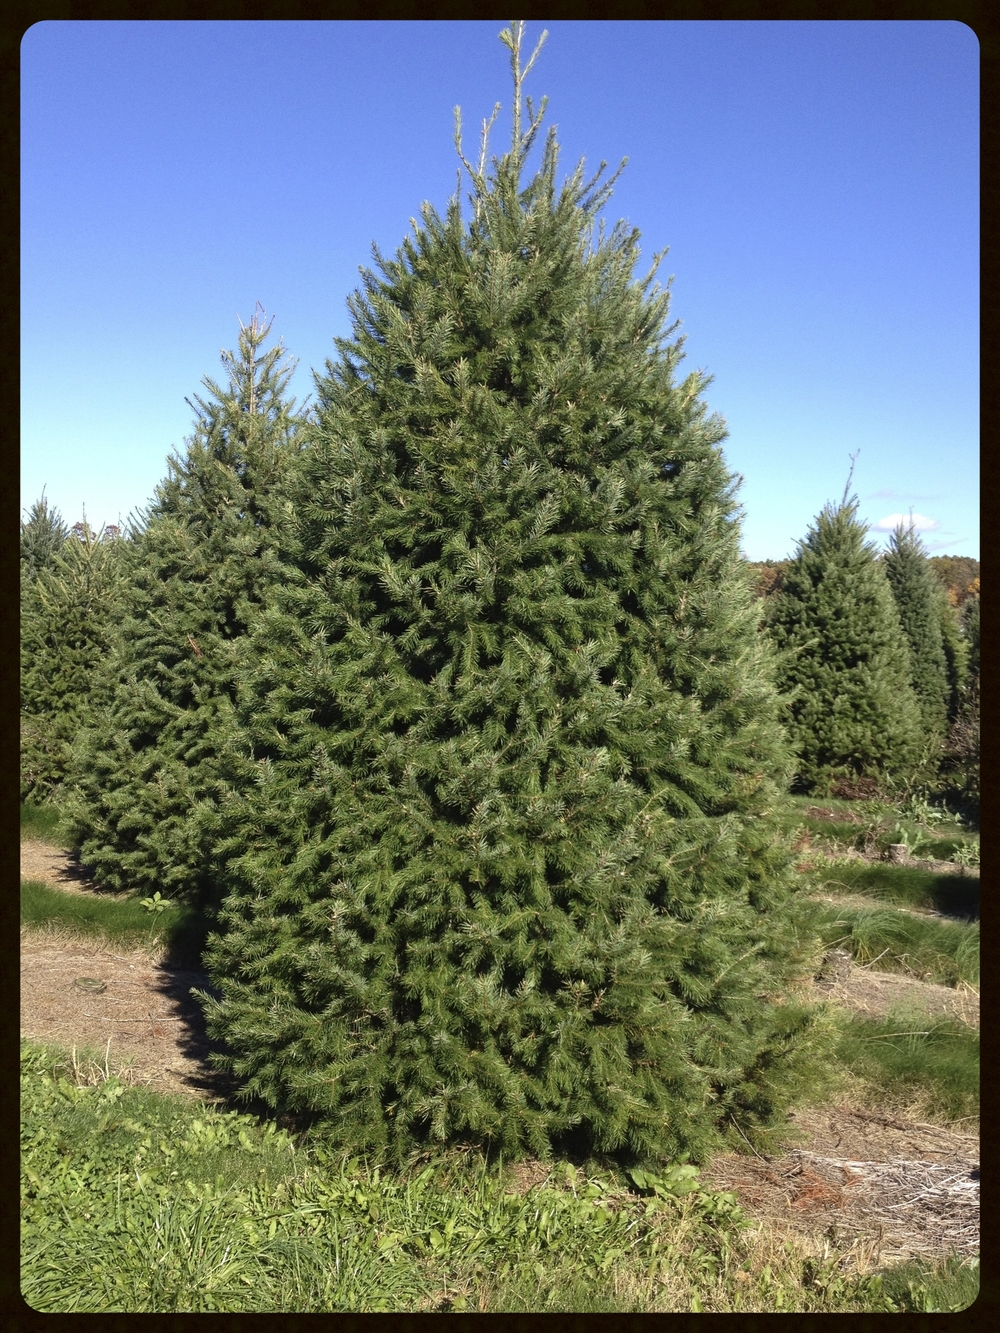 DOUGLAS FIR:  PRE-CUT UP TO 10' AND CUT-YOUR-OWN AVAILABLE UP TO 9'                                           COST:  UNDER 5' $31.99.    5'-8' $41.99.     OVER 8' $46.99                                                    *UNDER 5' PRE-CUTS PRICED INDIVIDUALLY